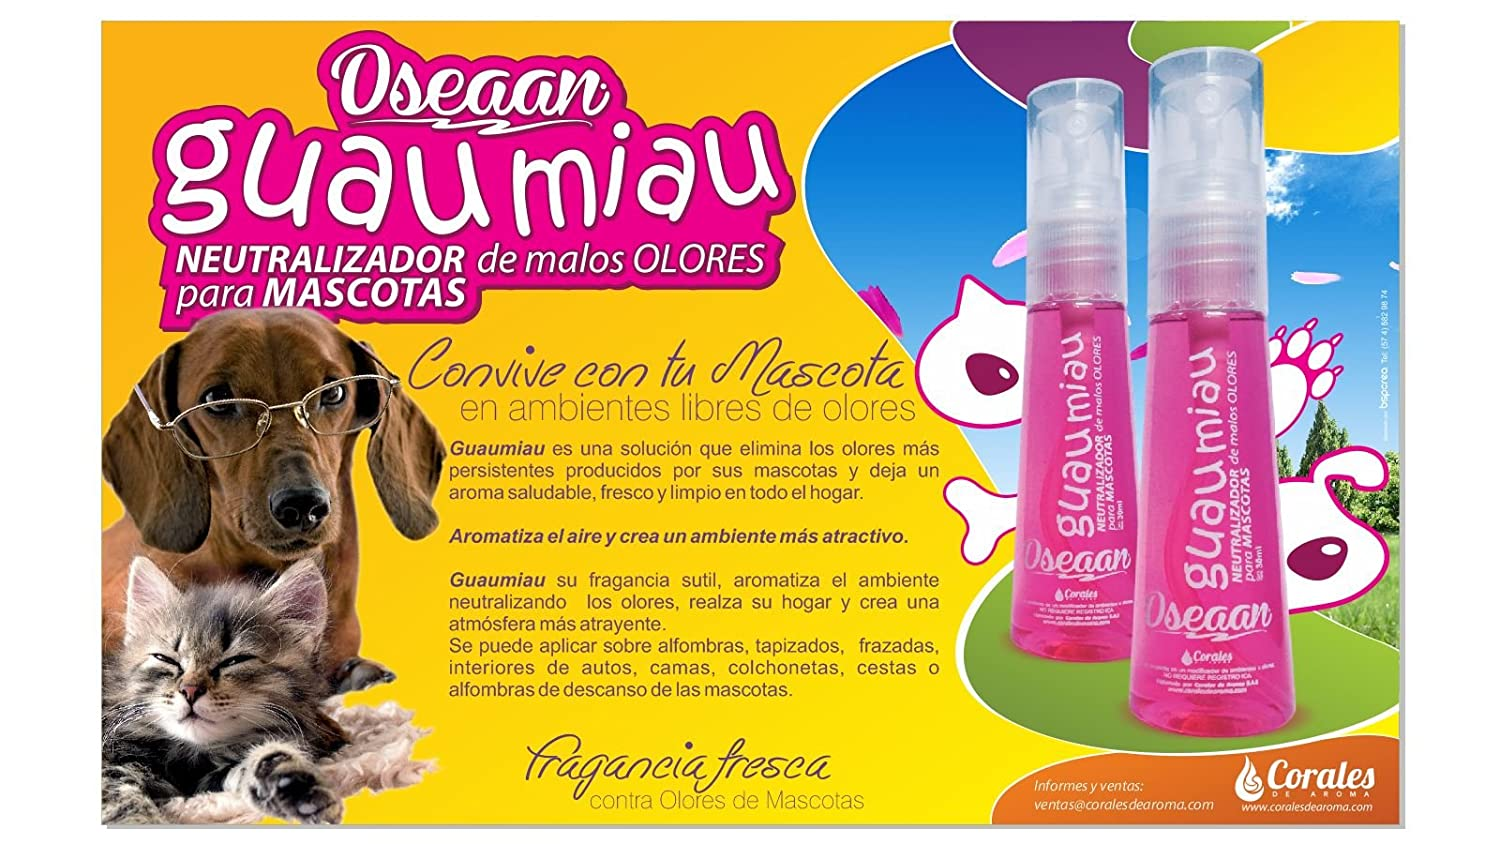 Amazon.com : Oseaan clean Pet Odor Neutralizer- GUAMIAU : Pet Supplies